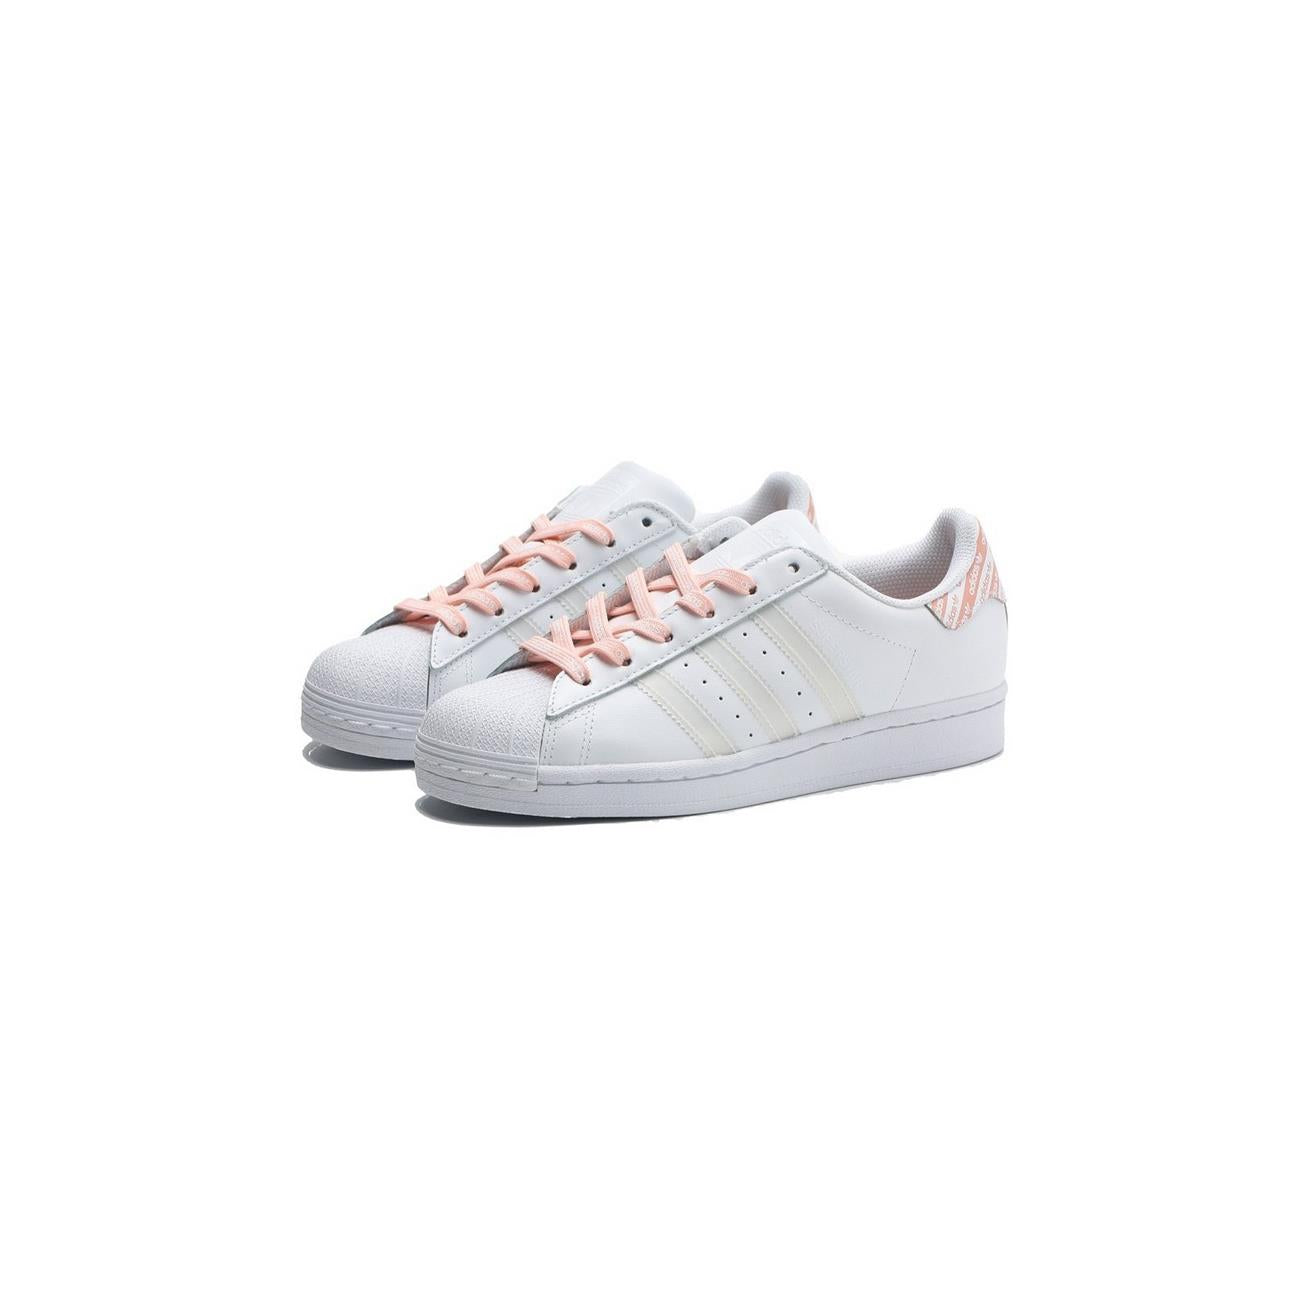 Adidas Superstar J FV3761